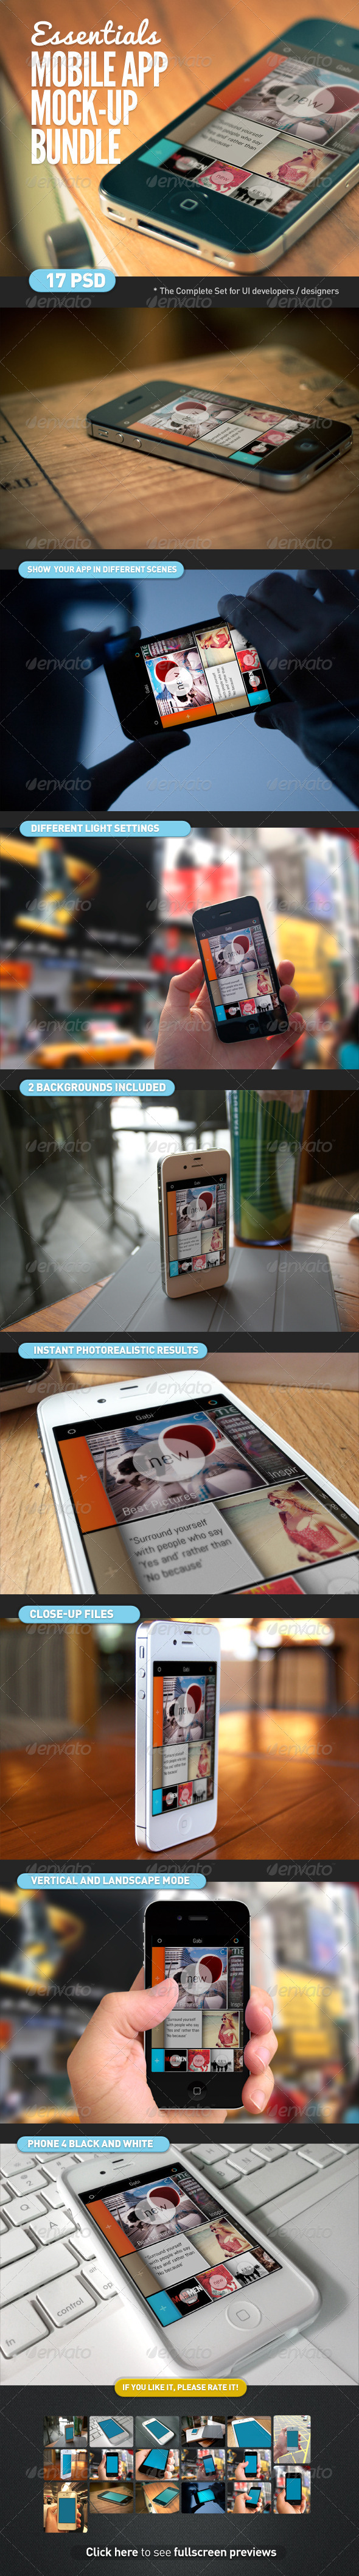 GraphicRiver Mobile App Screen Mock-Up Essentials Bundle 4354649